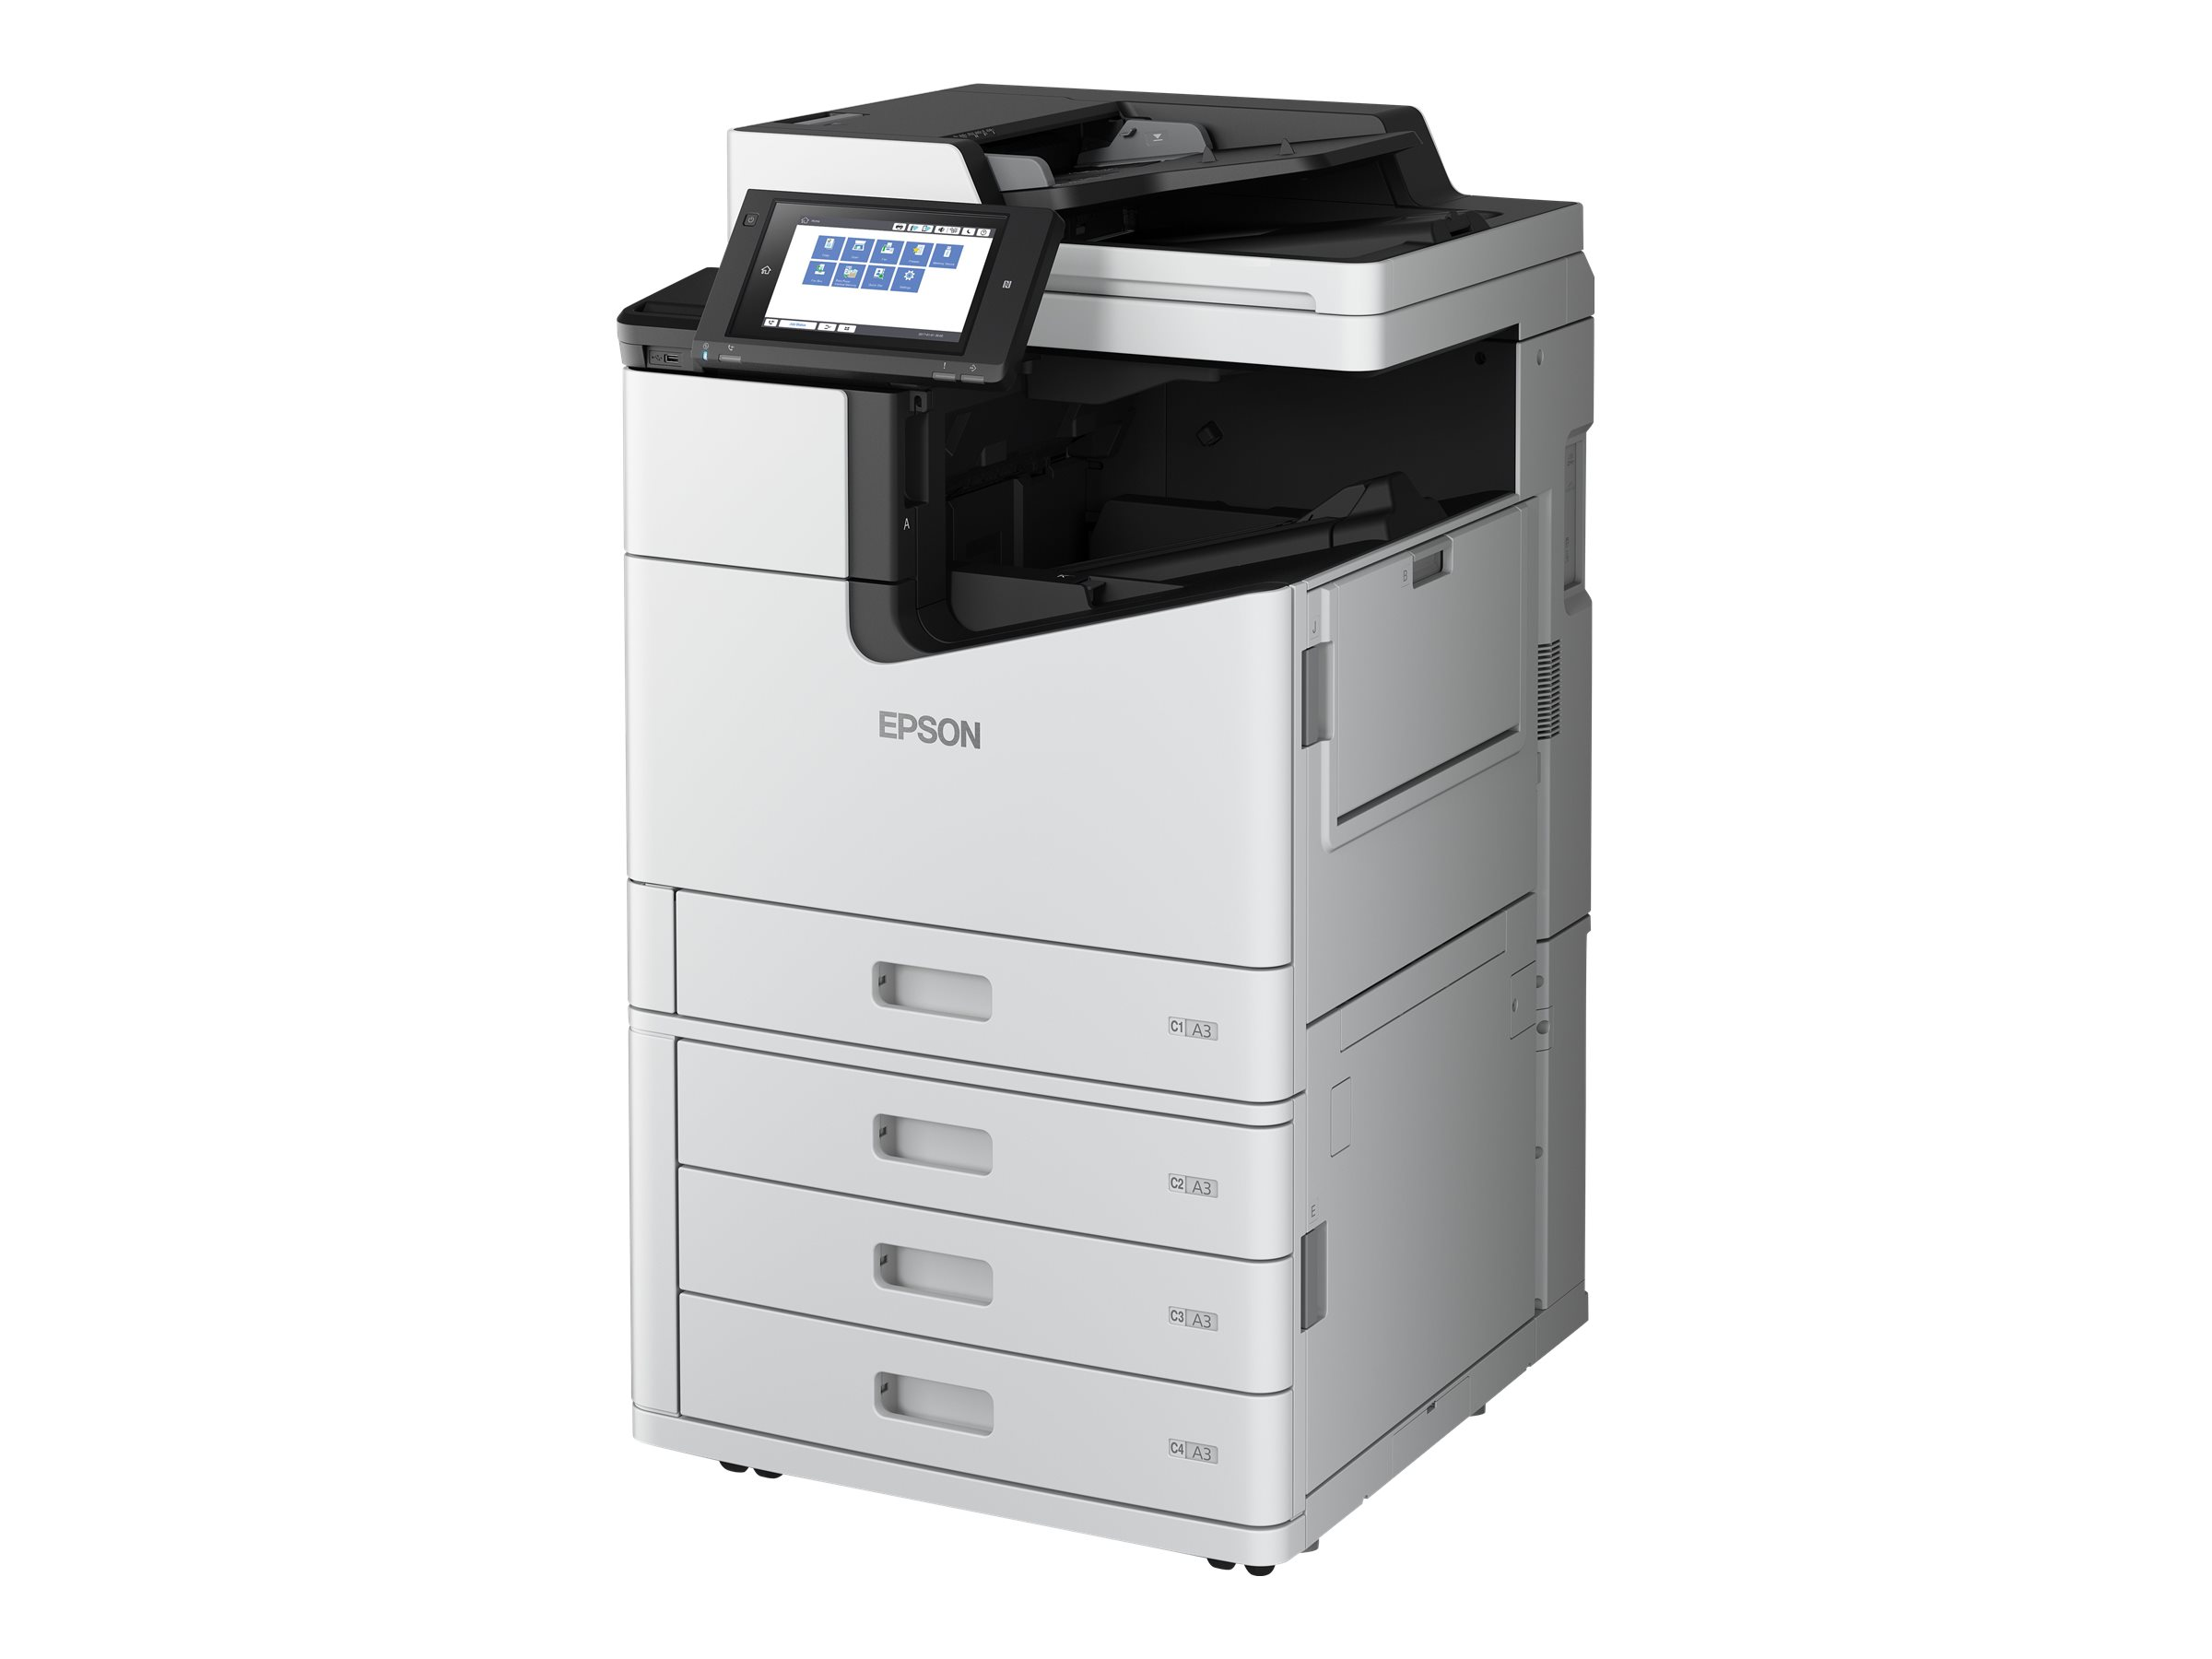 Epson WorkForce Enterprise WF-C17590 D4TWF - Multifunktionsdrucker - Farbe - Tintenstrahl - A3 (297 x 420 mm)